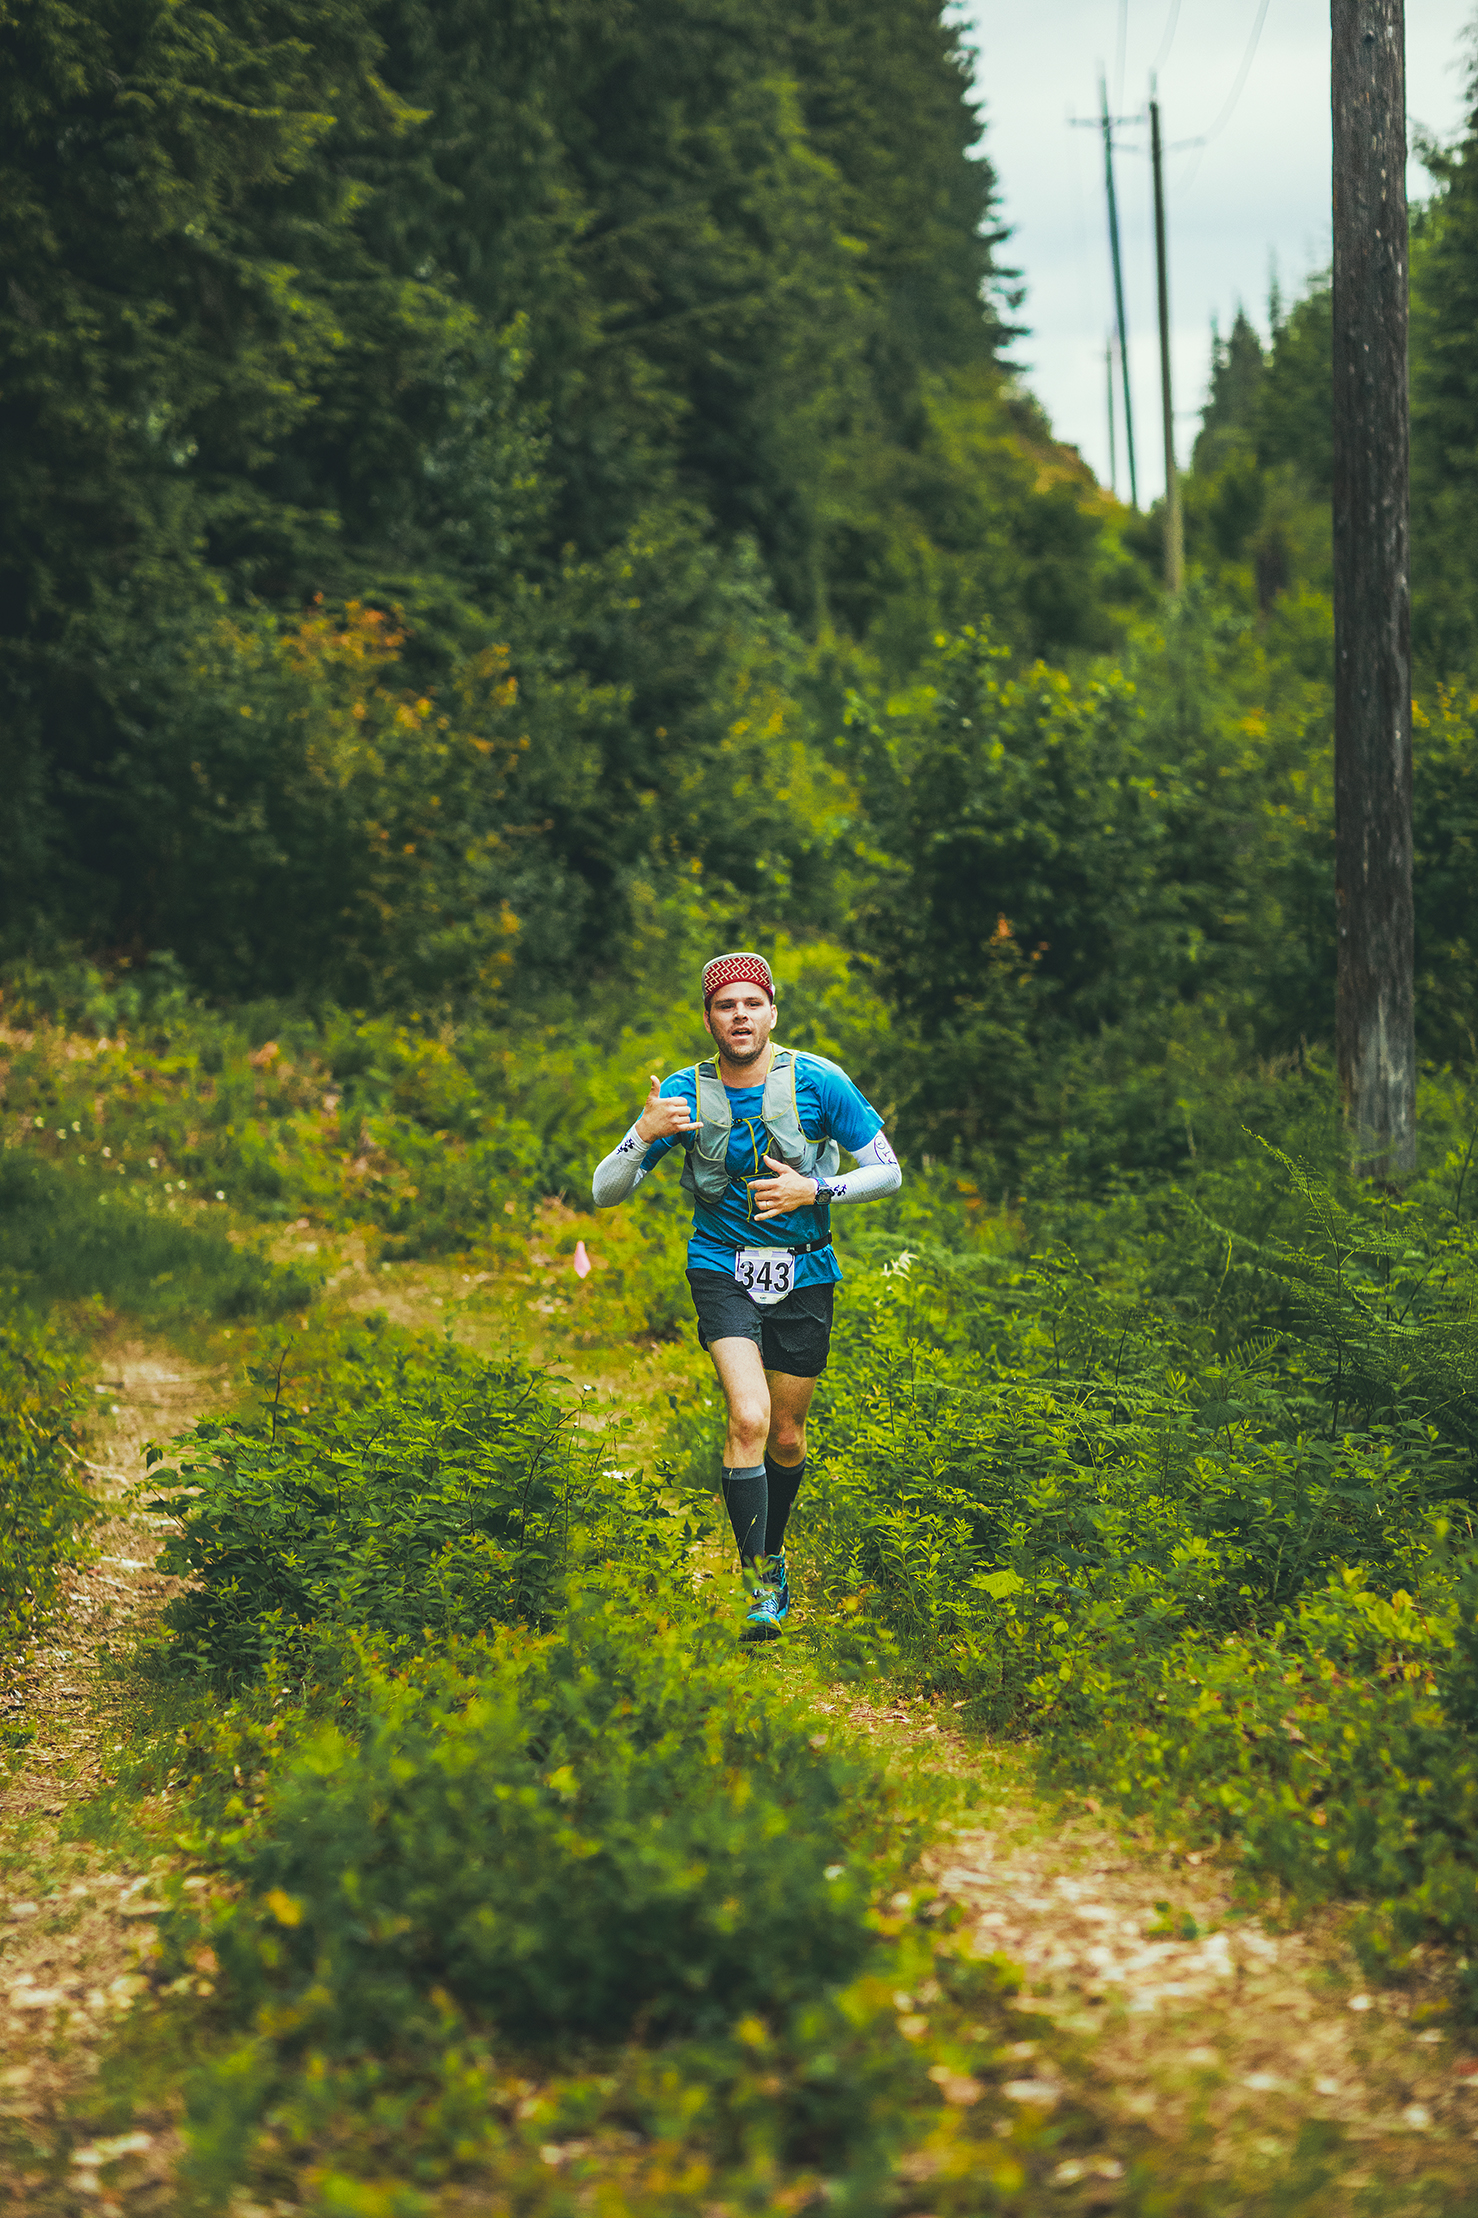 Fraser Valley Trail Races - Bear Mountain - IMG_2086 by Brice Ferre Studio - Vancouver Portrait Adventure and Athlete Photographer.jpg